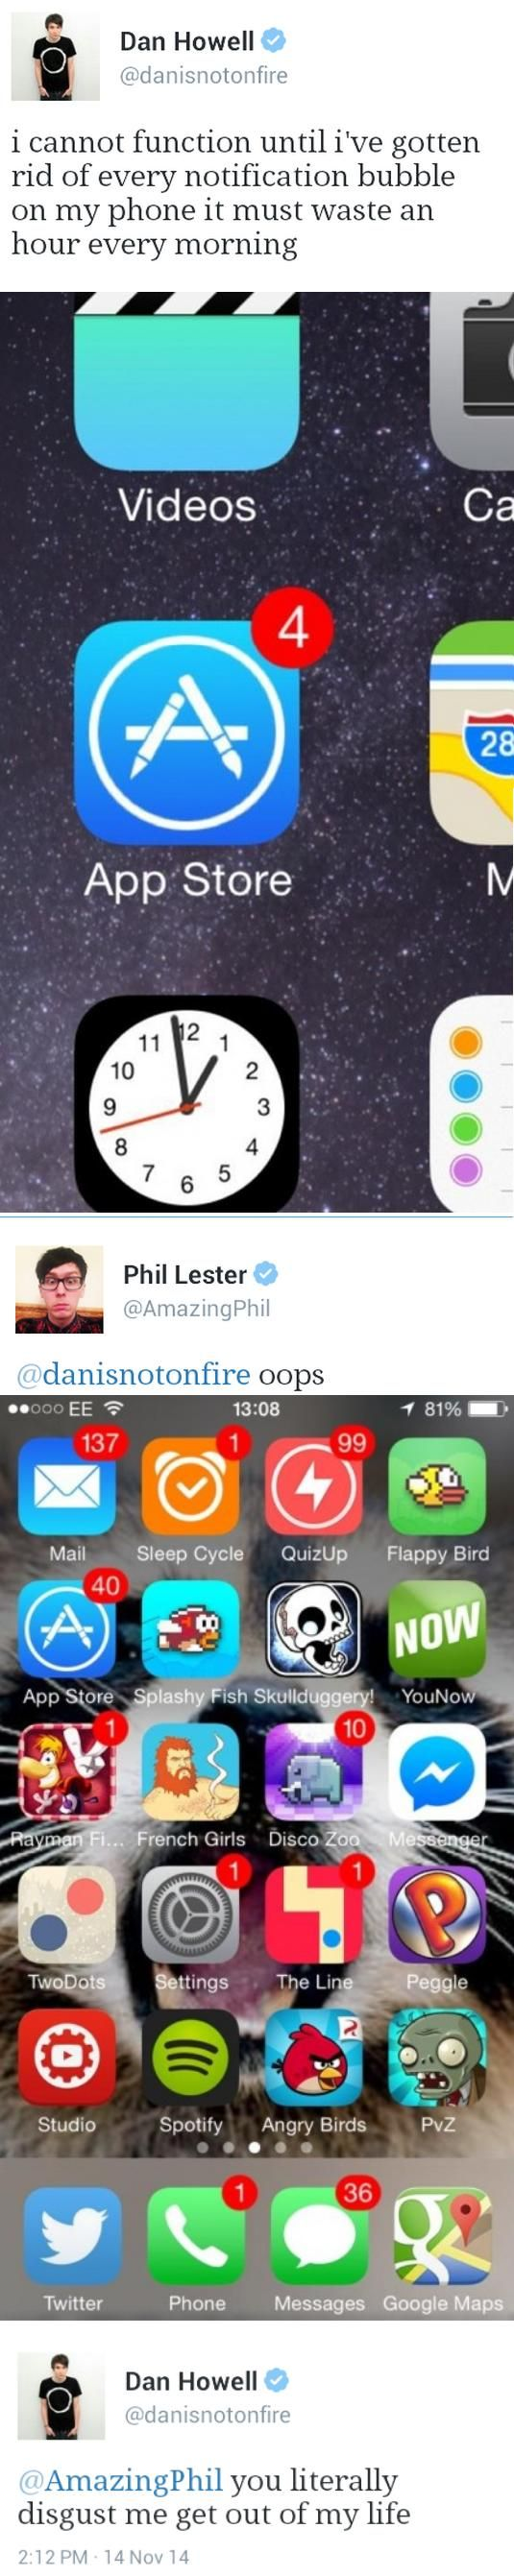 I could never see Phil's phone in real life I can't Stand the bubbles I would have to go through them or I would through the phone